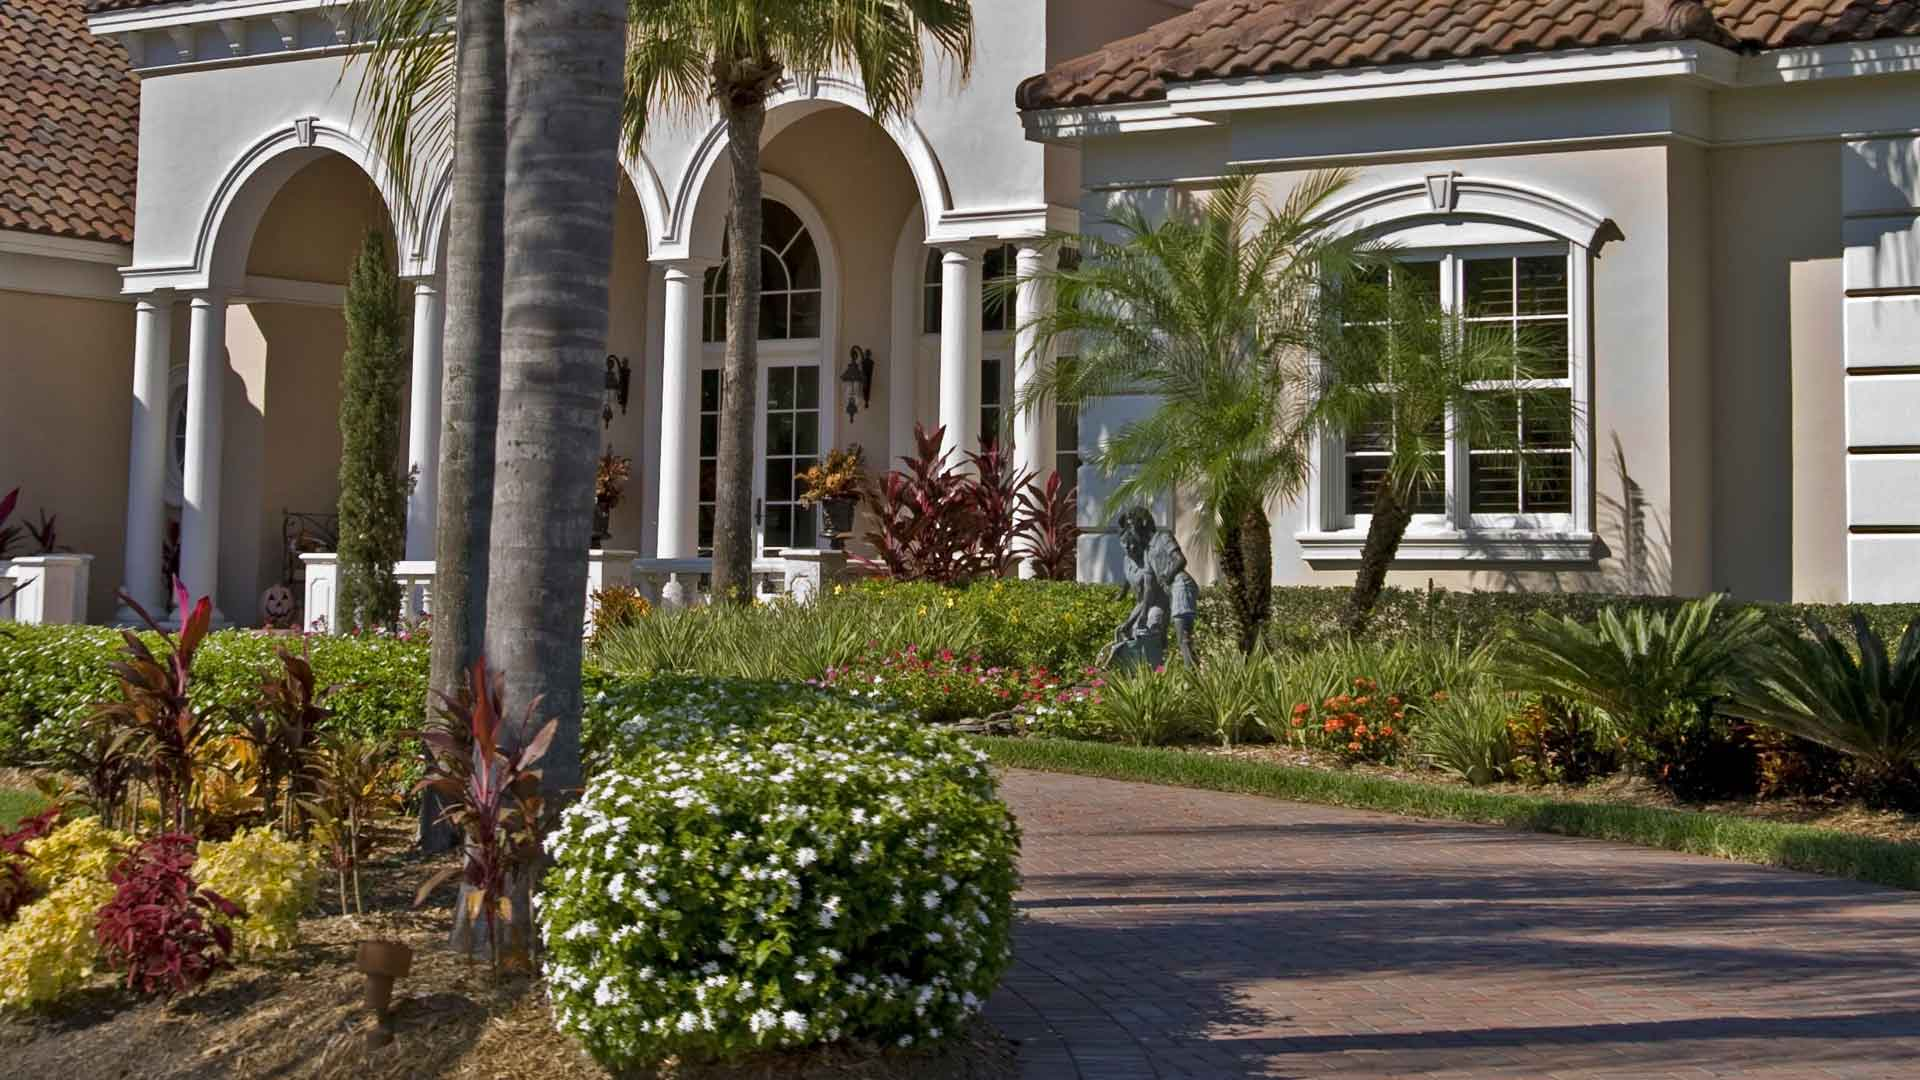 New professional landscaping at a home in Palm Beach, FL.